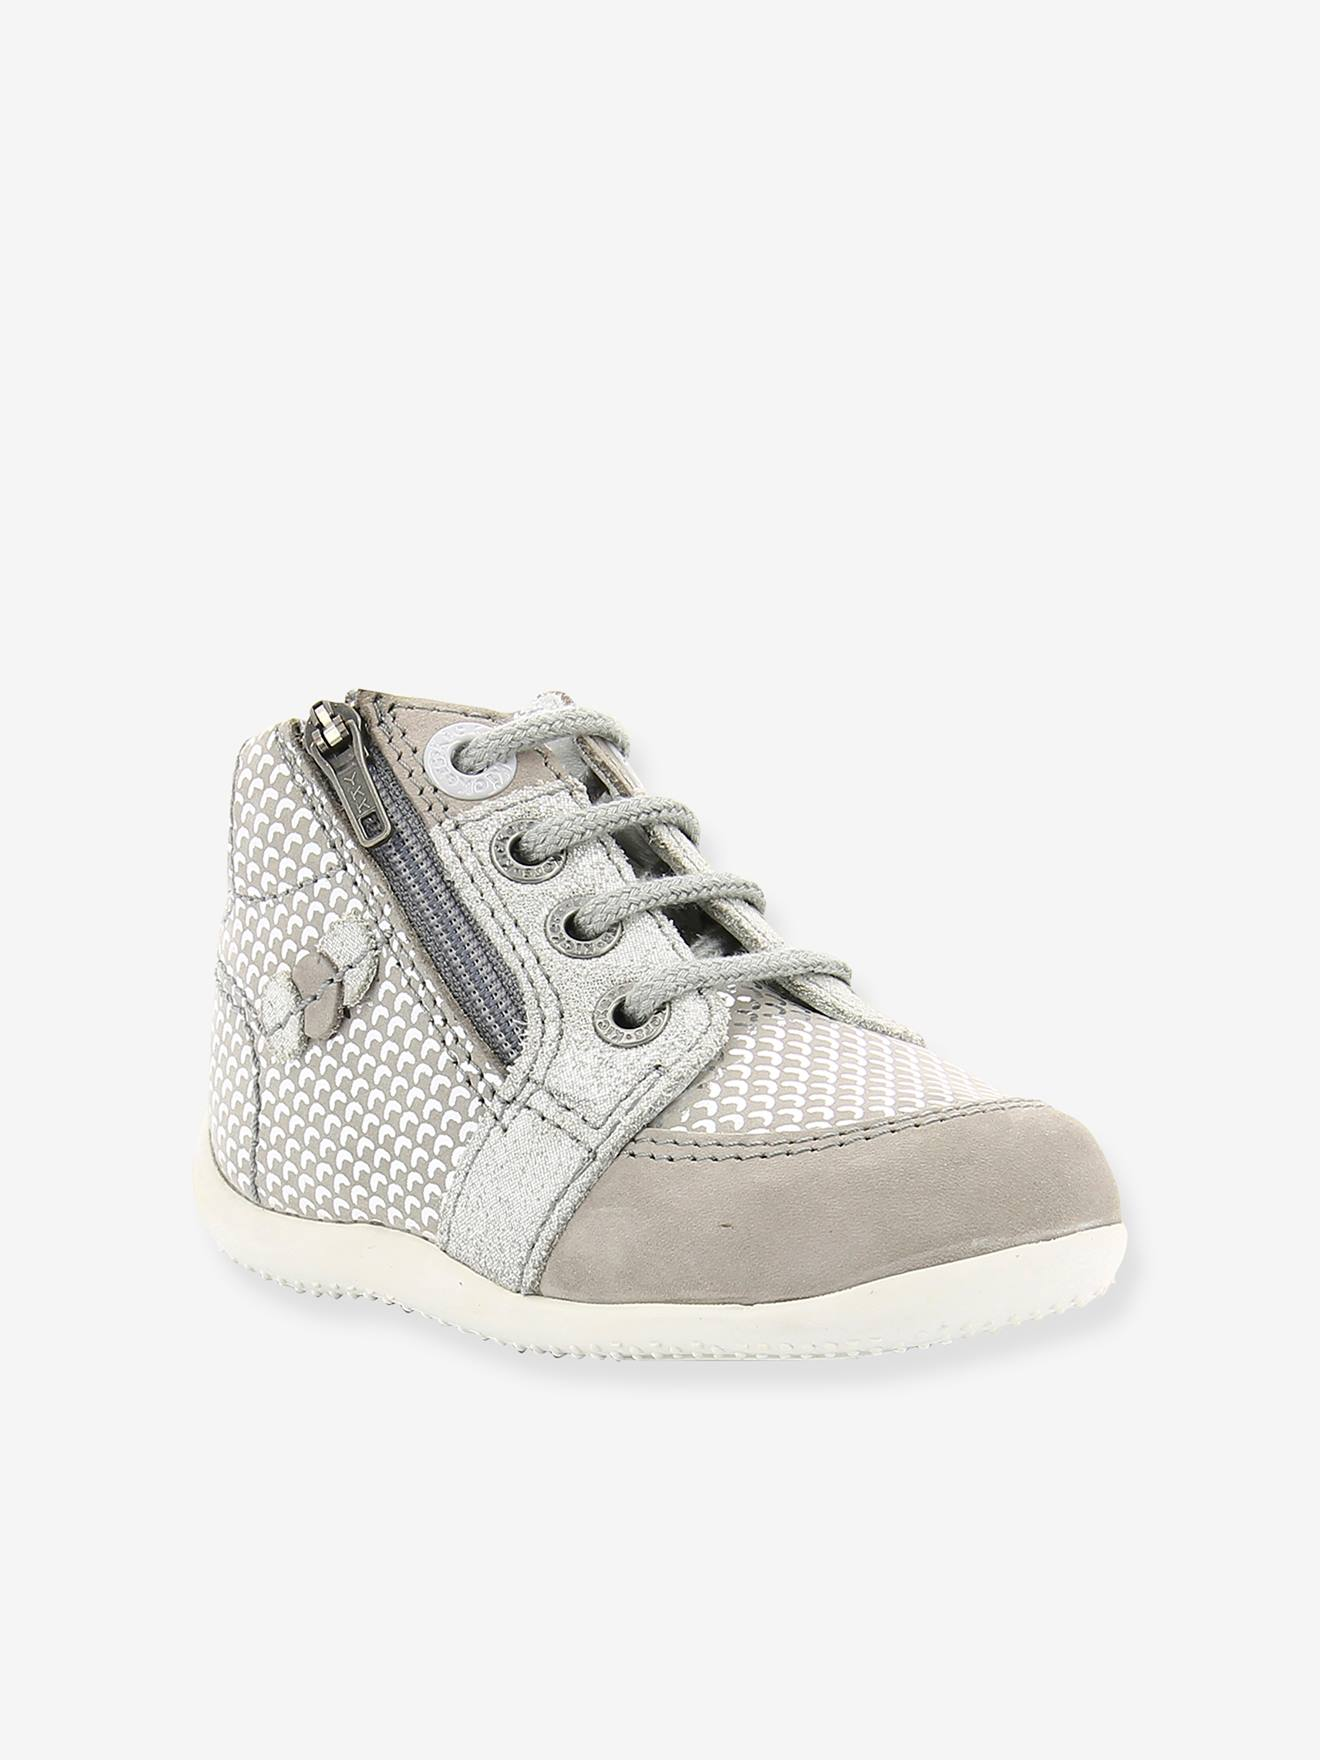 Chaussures b b fille kickers - Besson chaussures enfant ...